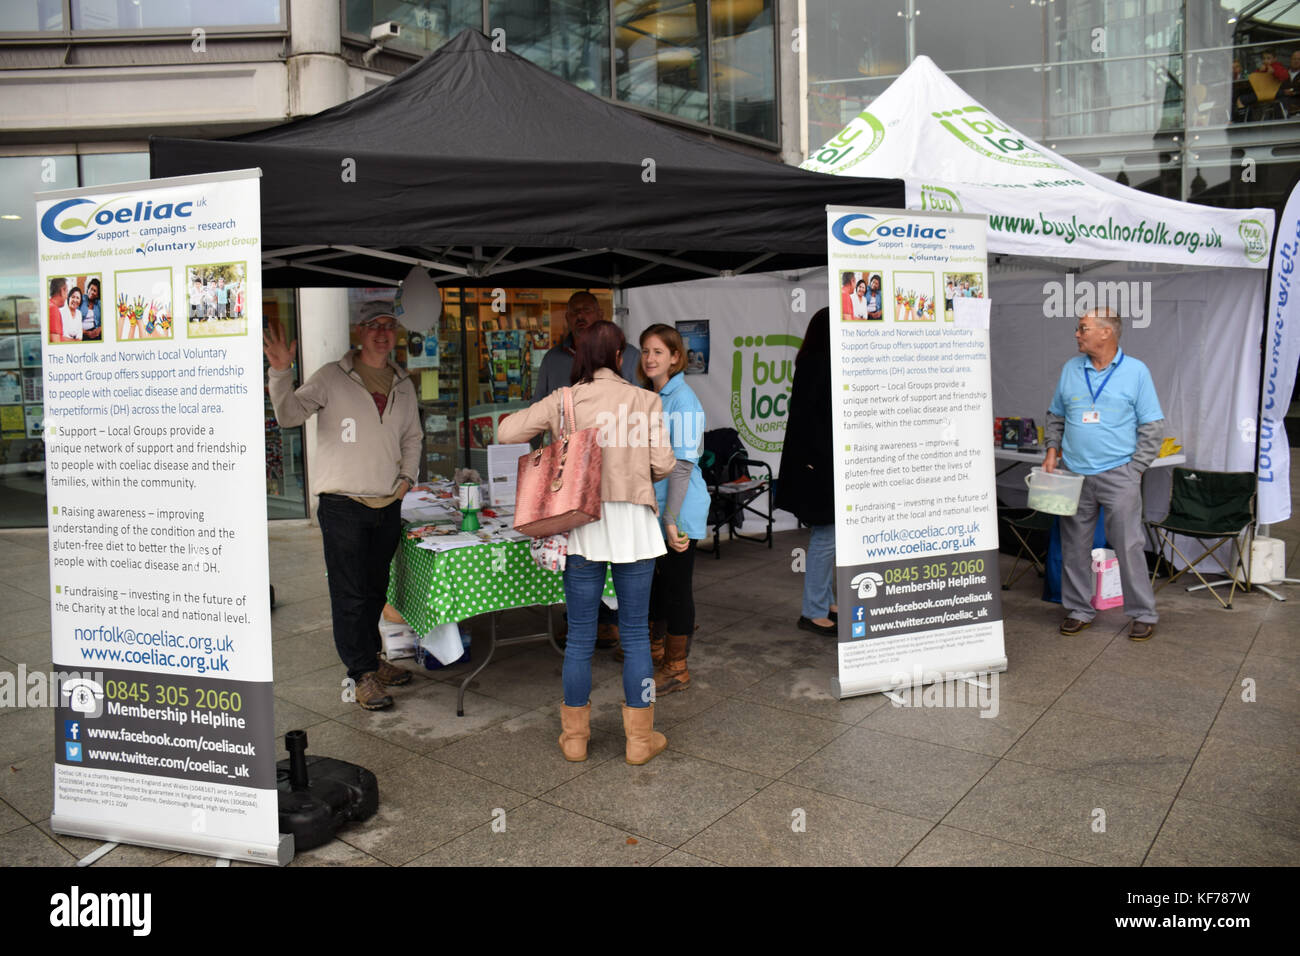 Gluten free food fair outside the Forum, Norwich, October 2017 - Stock Image